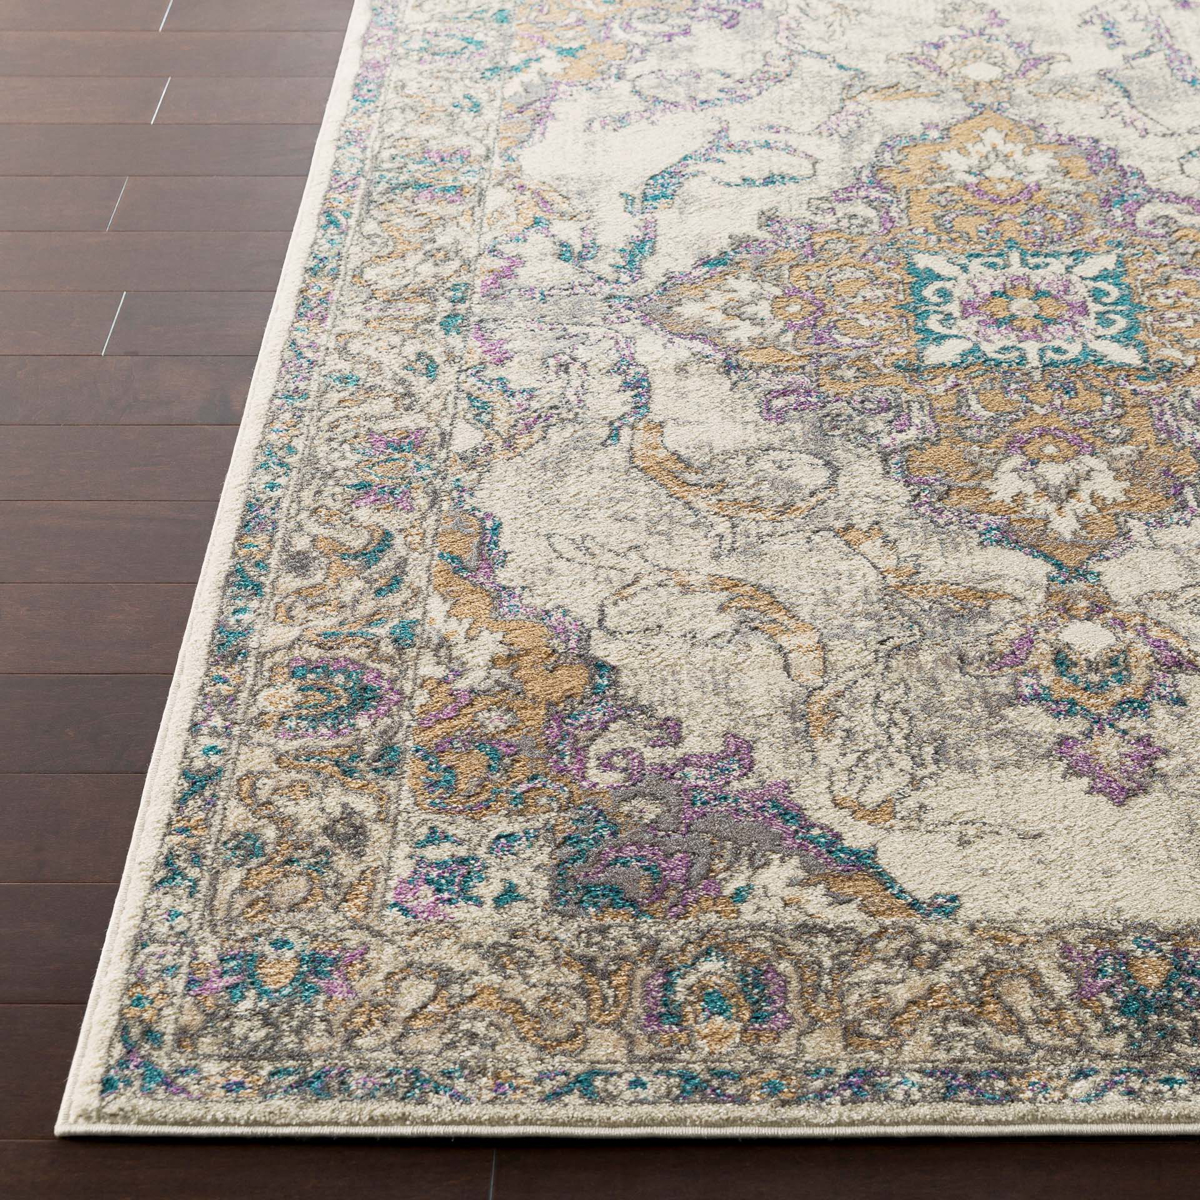 Classic ivory Turkish area rug with gray, purple and aqua ribbon and floral pattern on wood floor